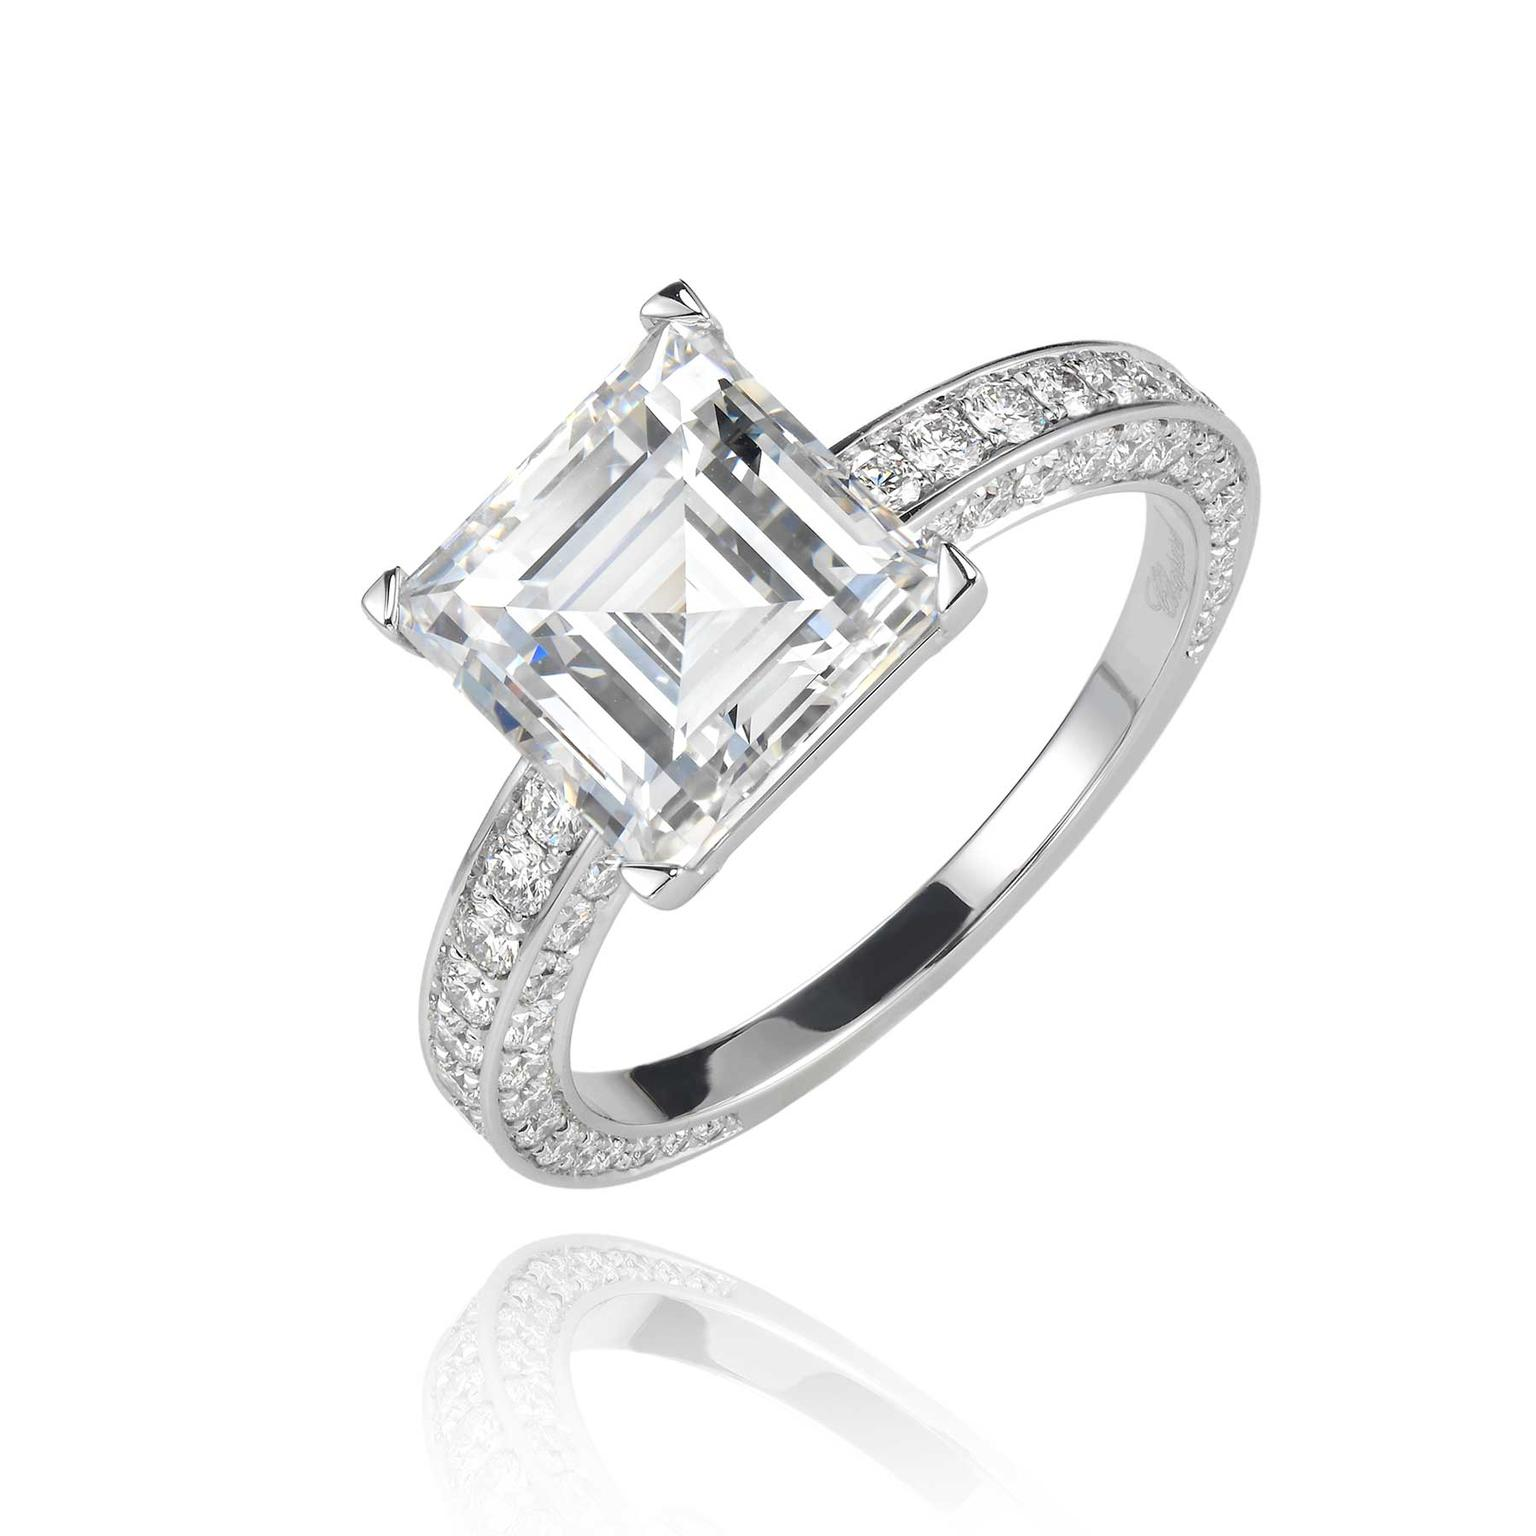 Chopard 3 19ct Step Cut Diamond Engagement Ring